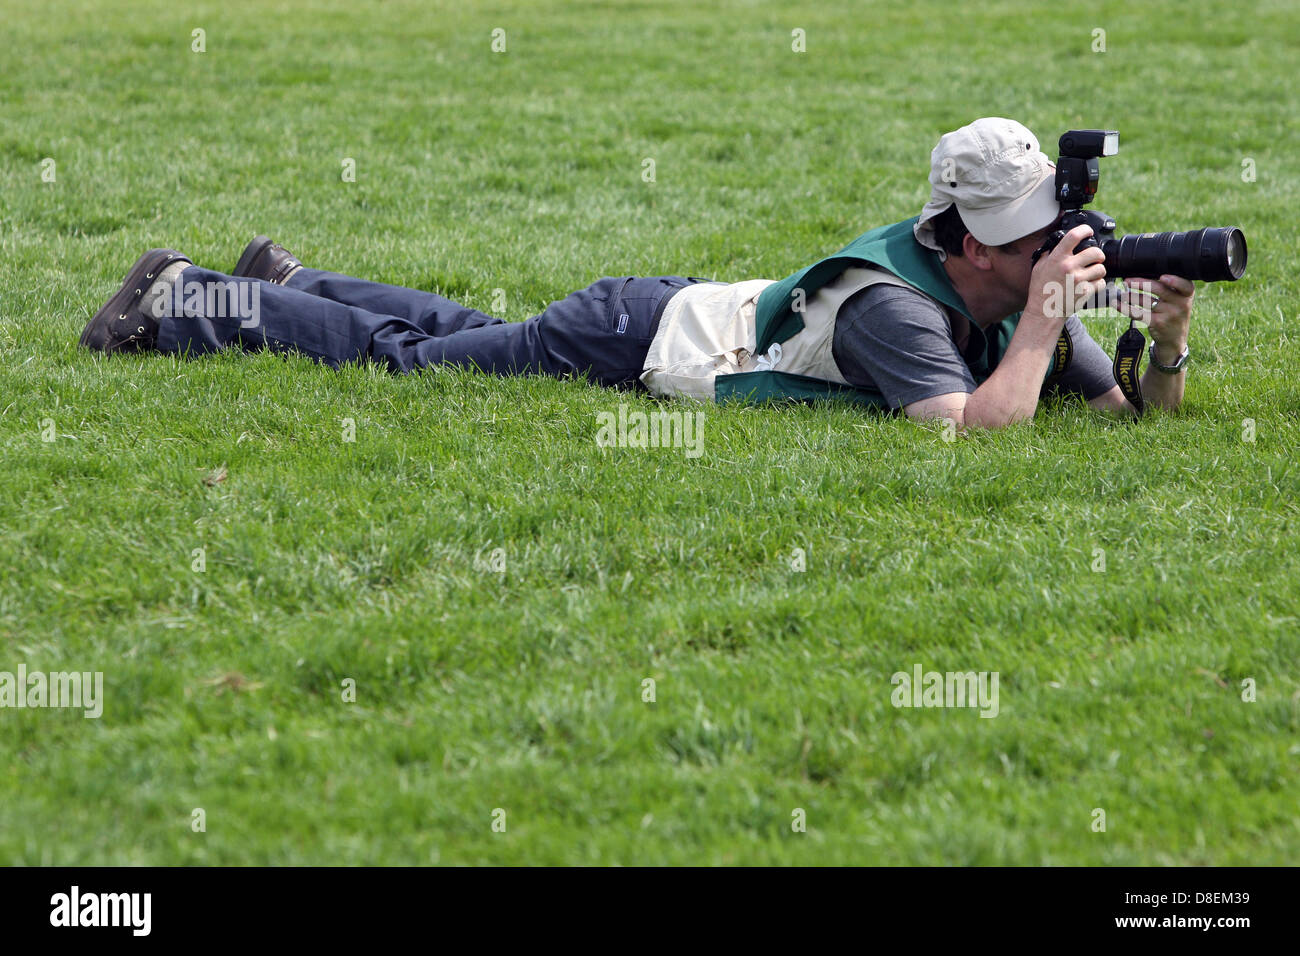 Epsom, UK, man is to take pictures in the grass - Stock Image